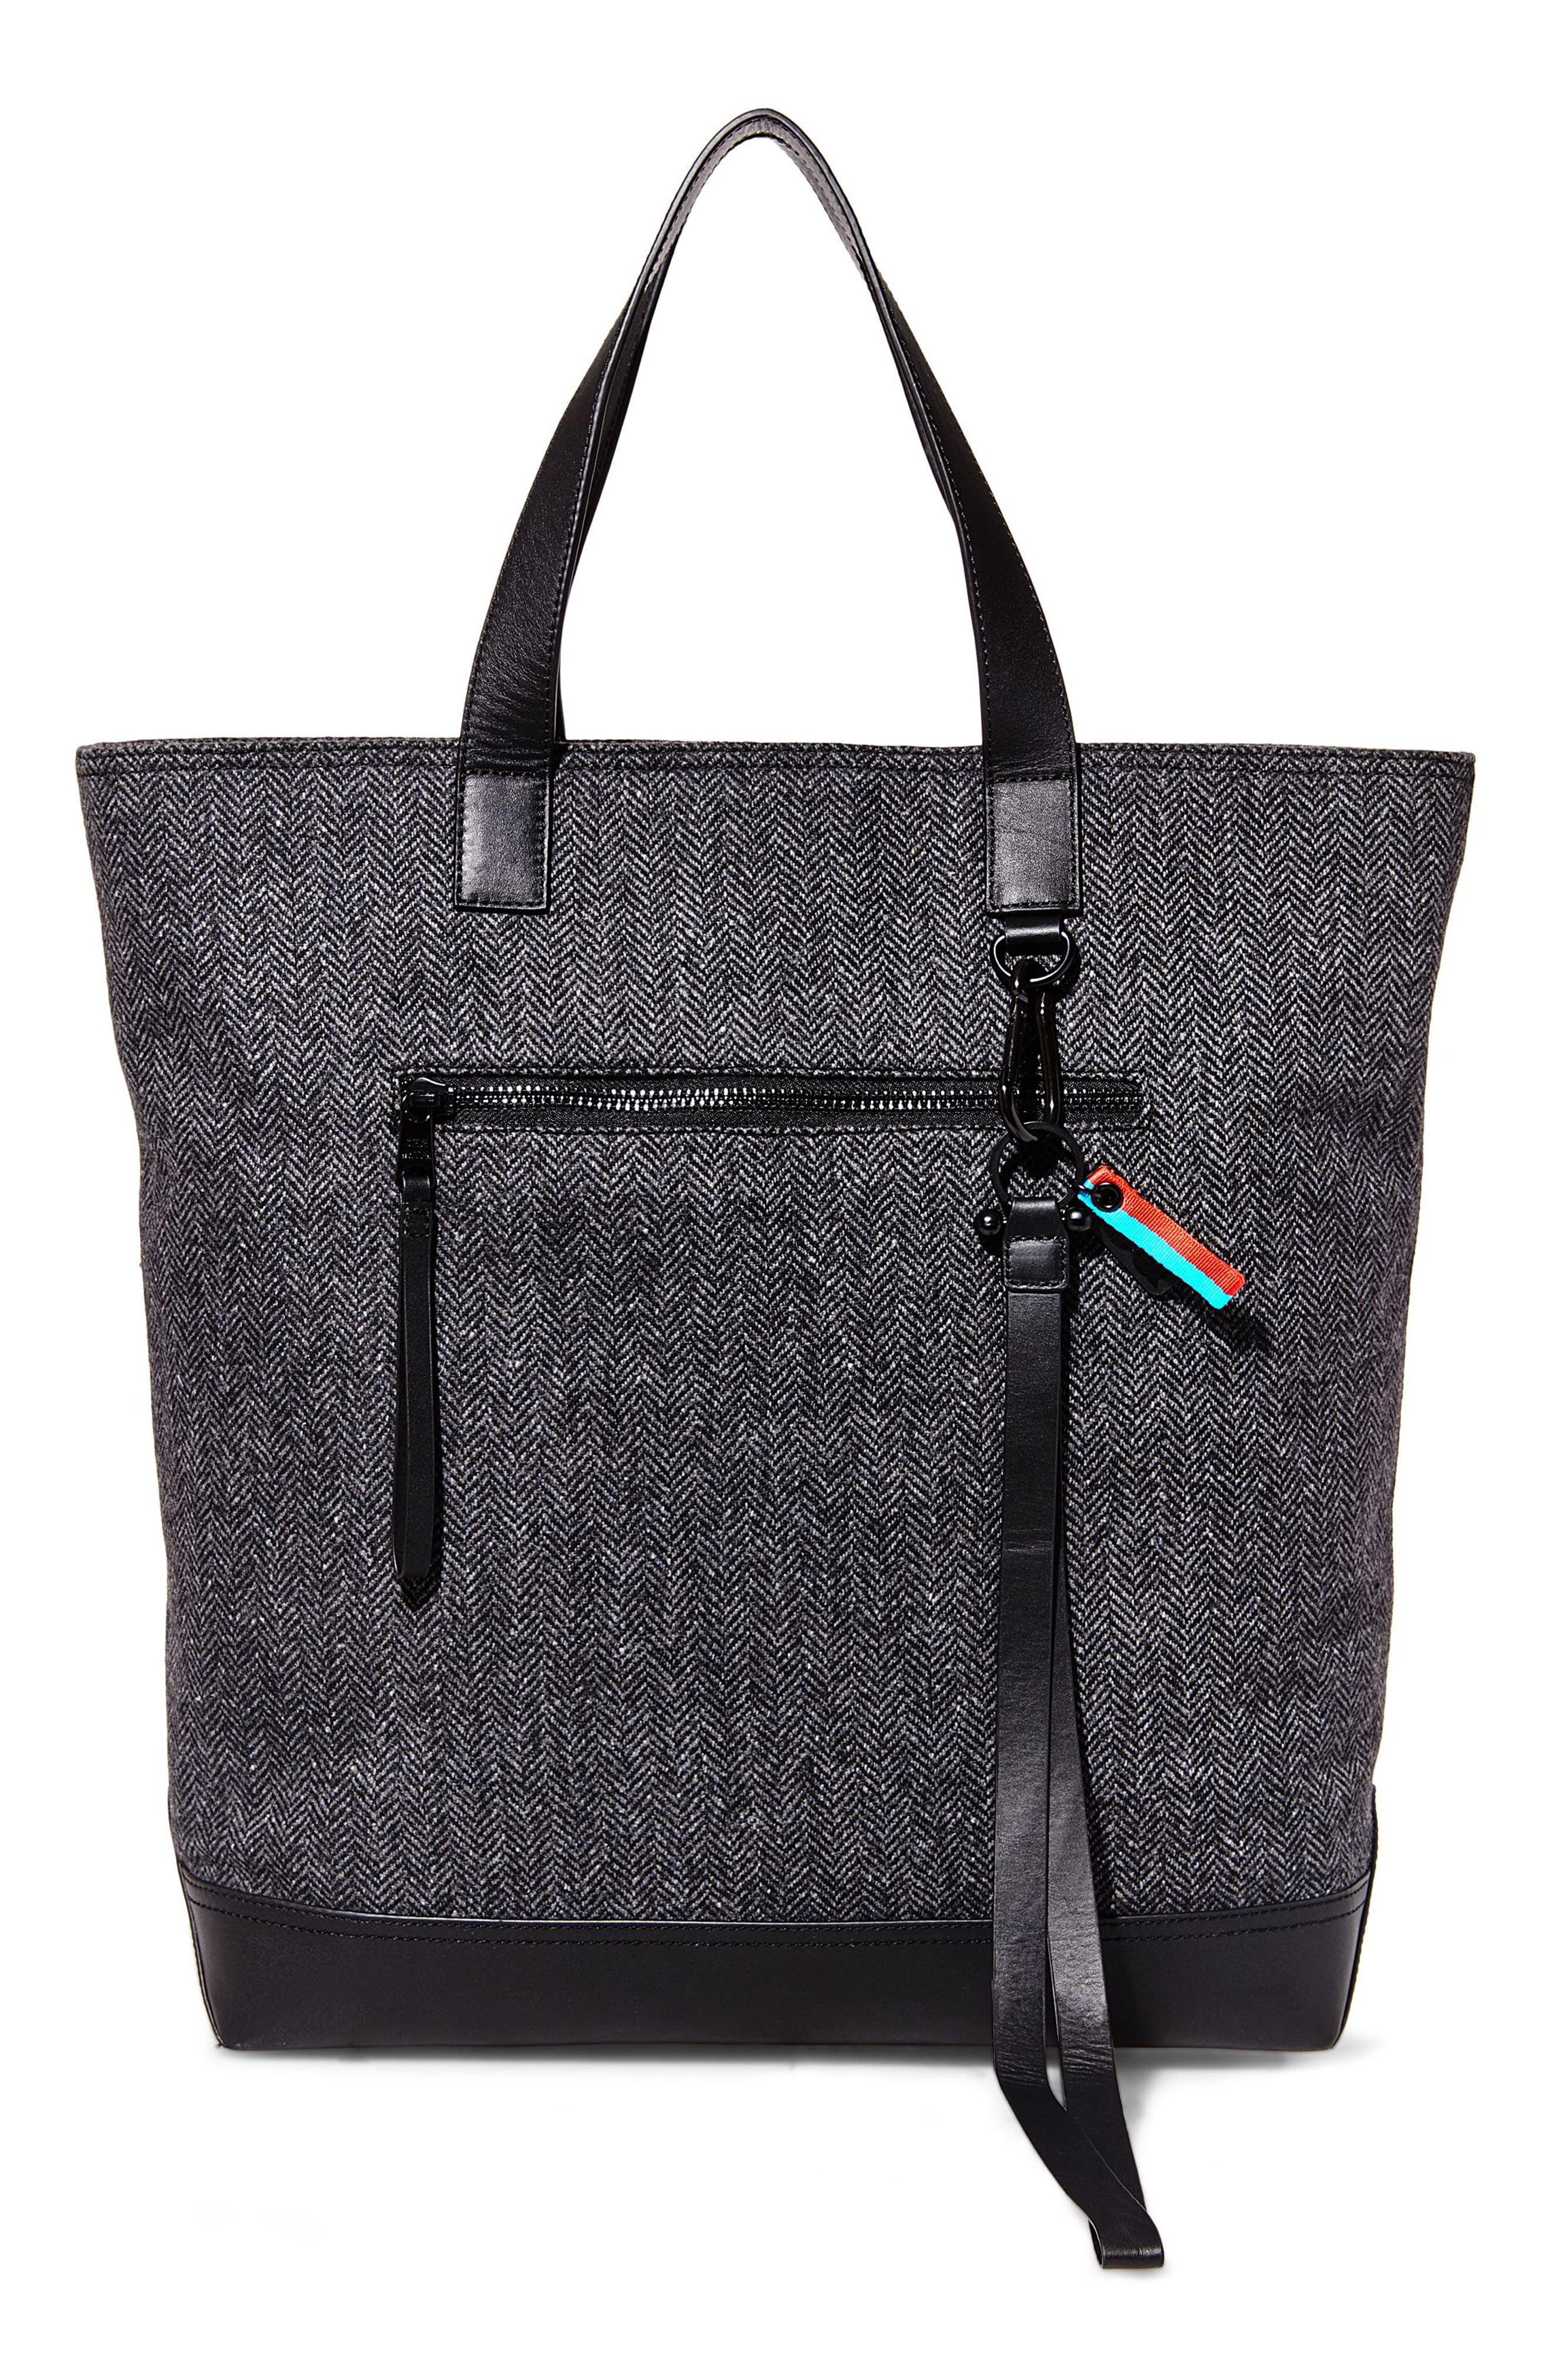 Alternate Image 1 Selected - GQ x Steve Madden Tote Bag